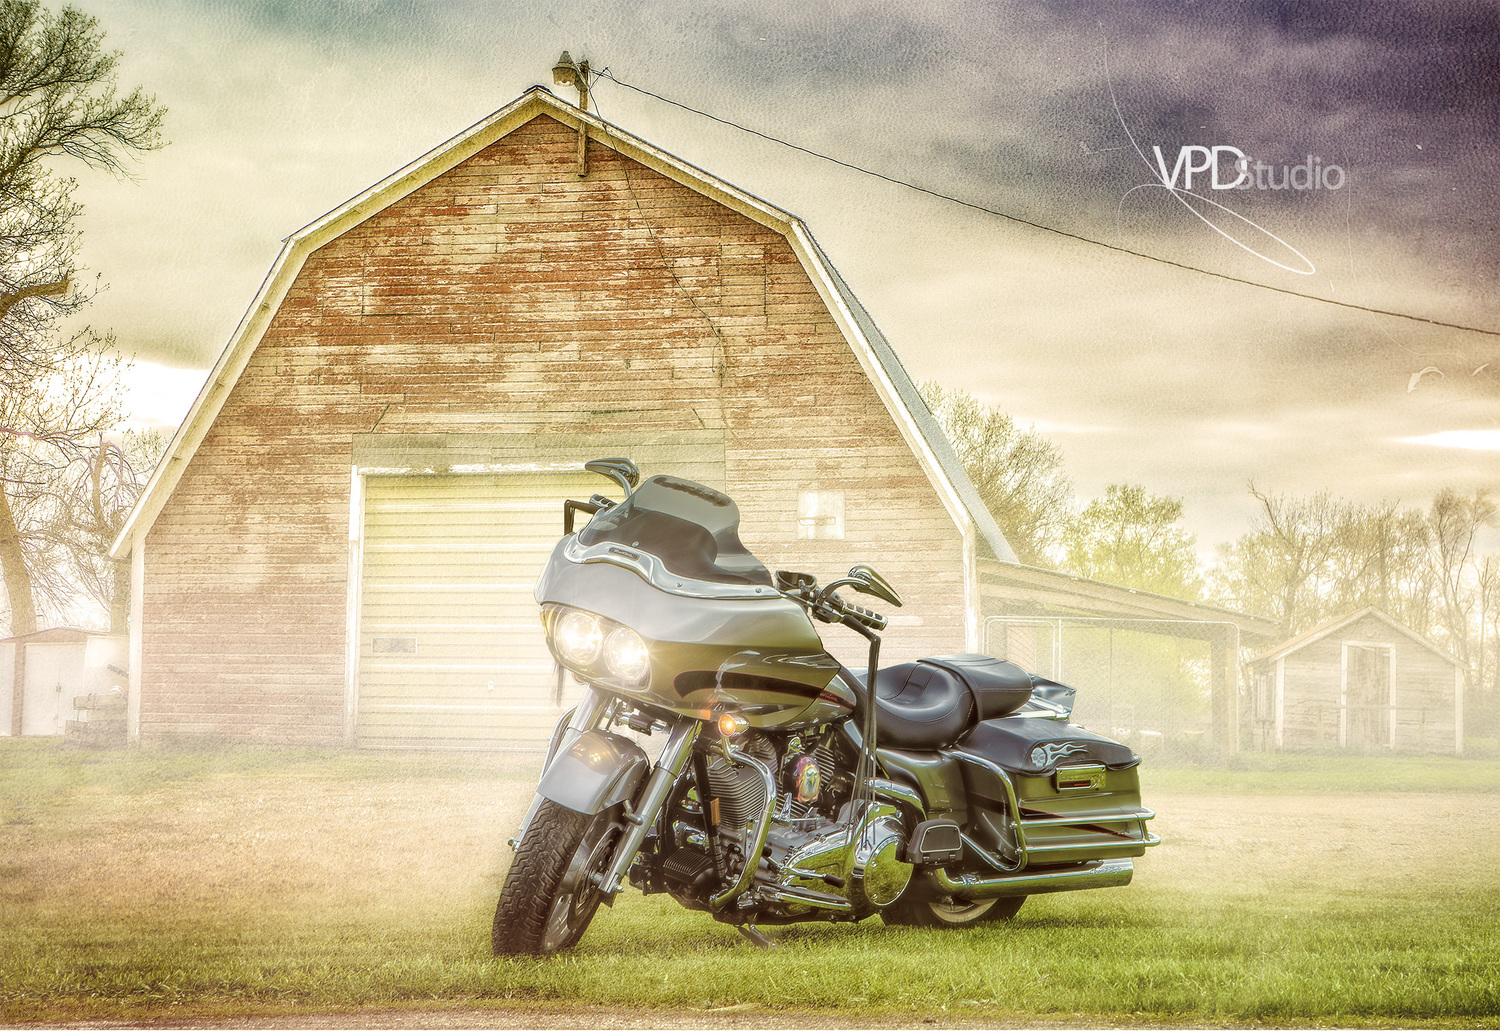 Surreal Photography - Let us help you capture that feeling of open road freedom.